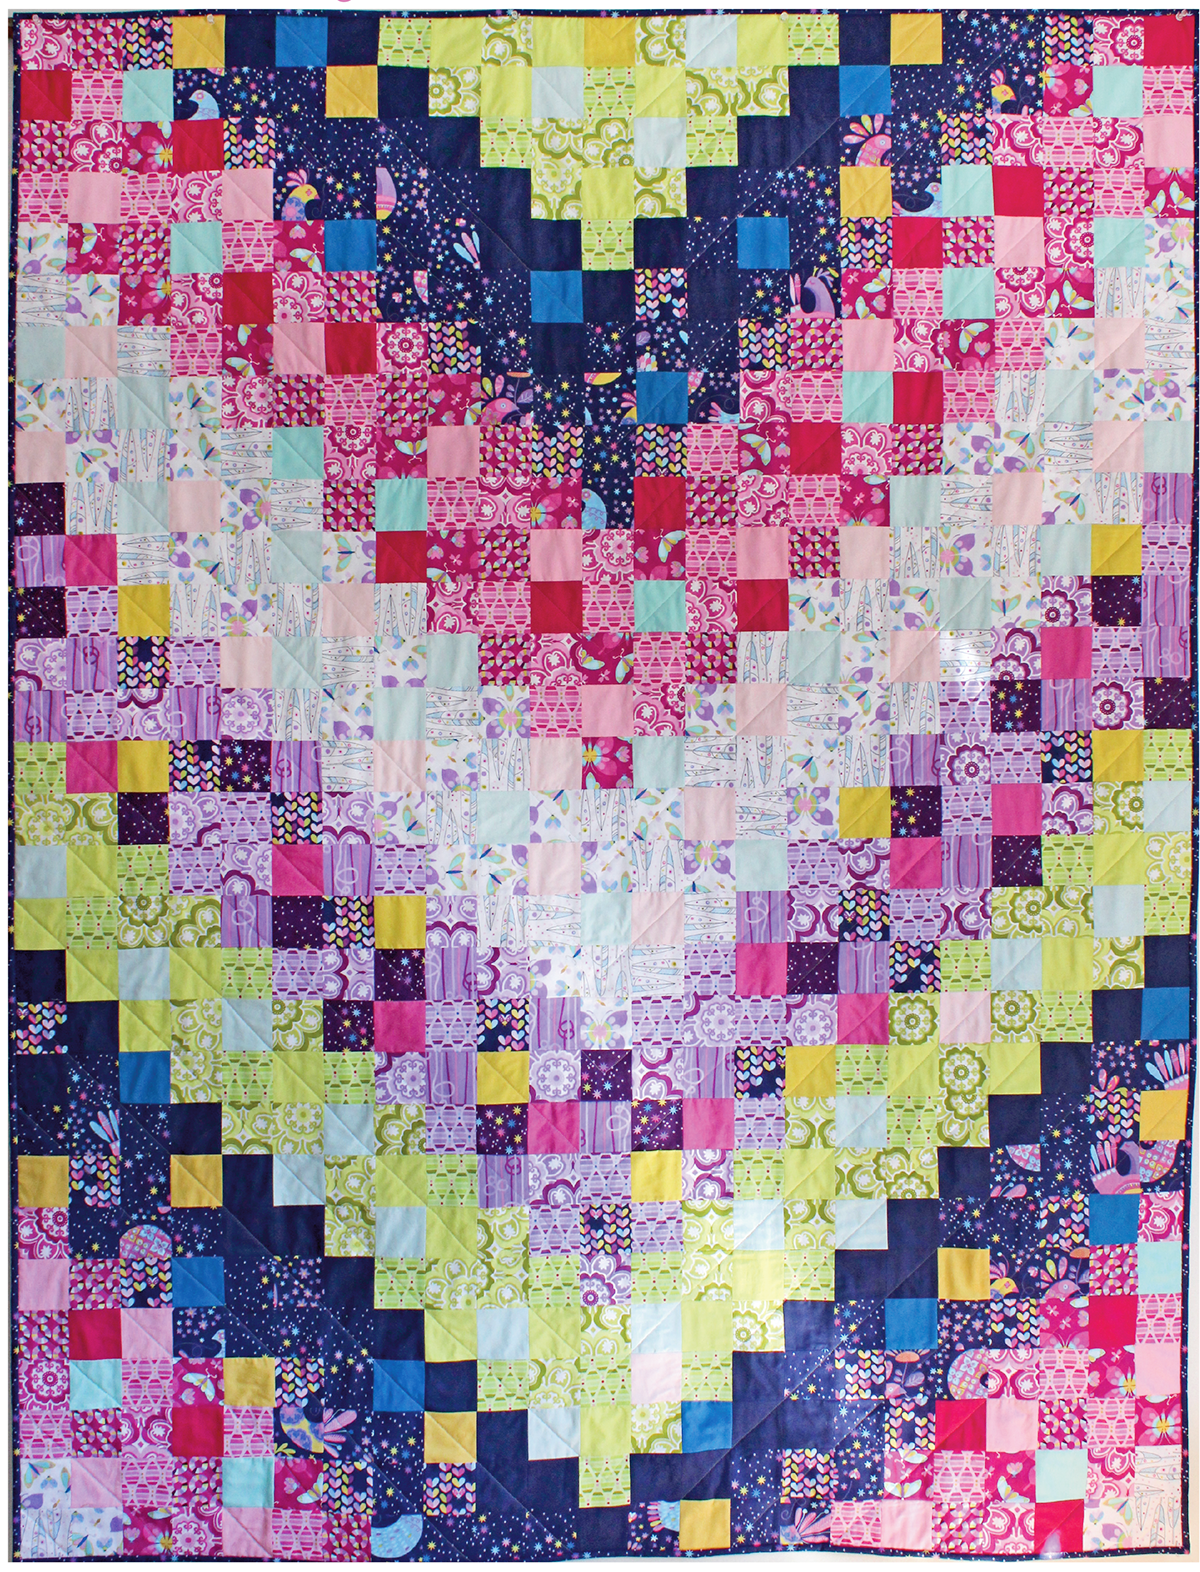 Flight Formation Quilt by Tamara Kate / 58x76